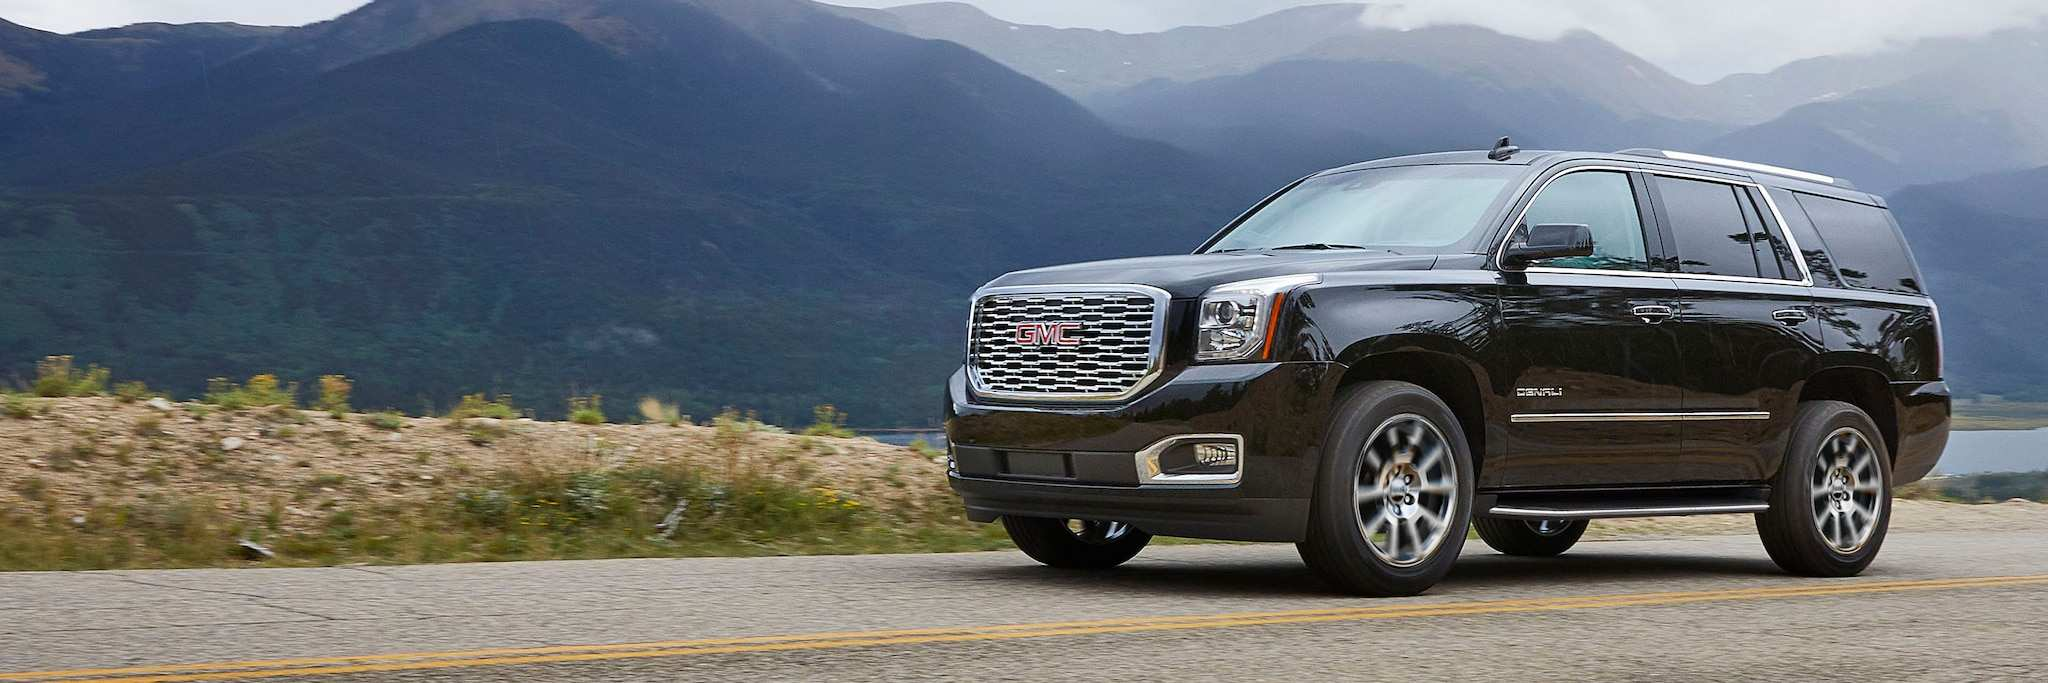 80 Gallery of When Will The 2020 Gmc Denali Be Available Pictures by When Will The 2020 Gmc Denali Be Available